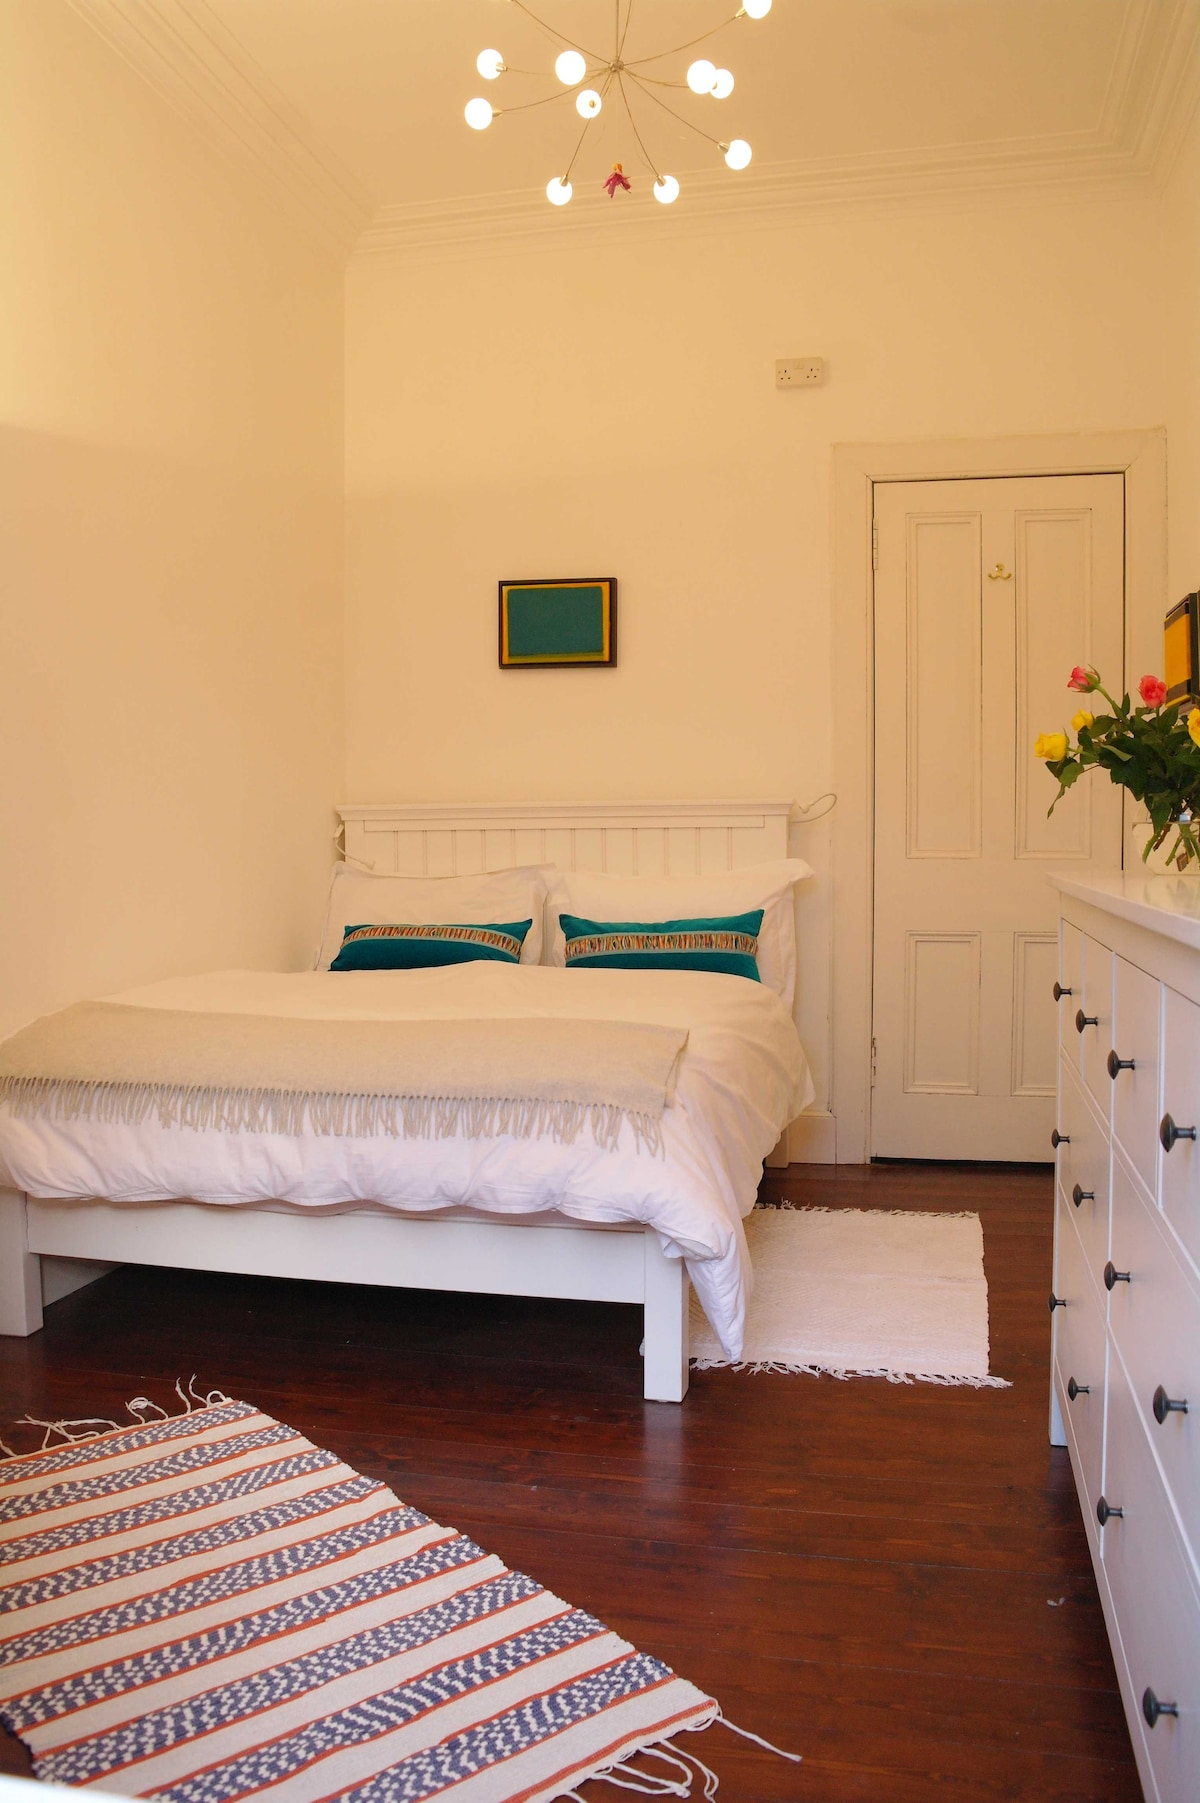 The quiet bedroom and its fully working shutters allow a good night's sleep